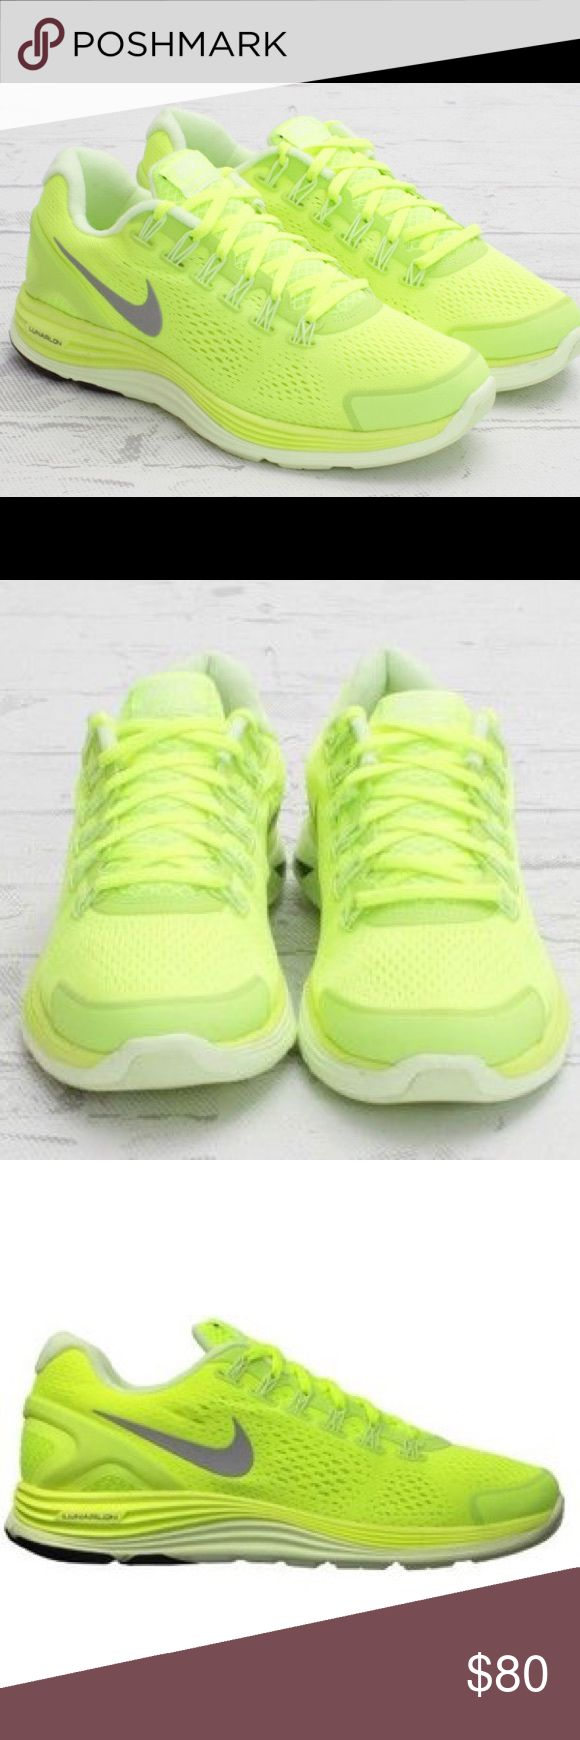 Nike lunarglide 4 volt running shoe neon yellow Women's NIKE® LUNARGLIDE+ 4 :: You'll feel like you're defying gravity when you slip on the women's Nike® LunarGlide+ 4. Enjoy more spring, more cushion and more flex - but even less weight. At only 8.1 ounces, let the LunarGlide lighten your load, whether you're heading out for a leisurely evening run or a quick morning jog. Perfect for daily training, the LunarGlide+ 4 will hug your feet in adaptable and customized comfort, thanks to Flywire…